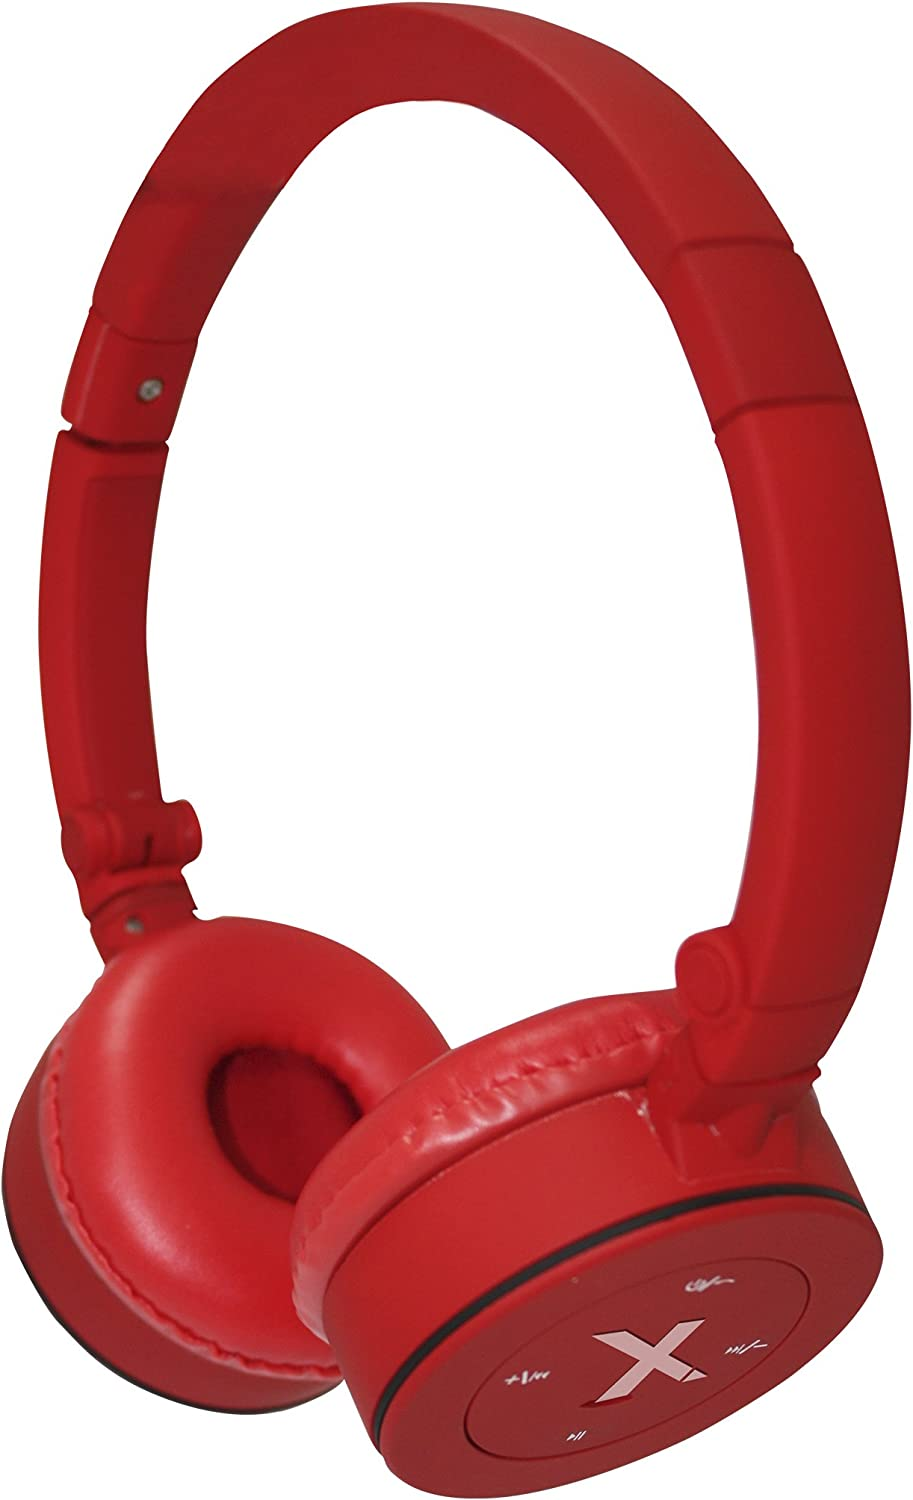 Approx APPHSBT02R - Auricular Bluetooth Stereo, Color Rojo